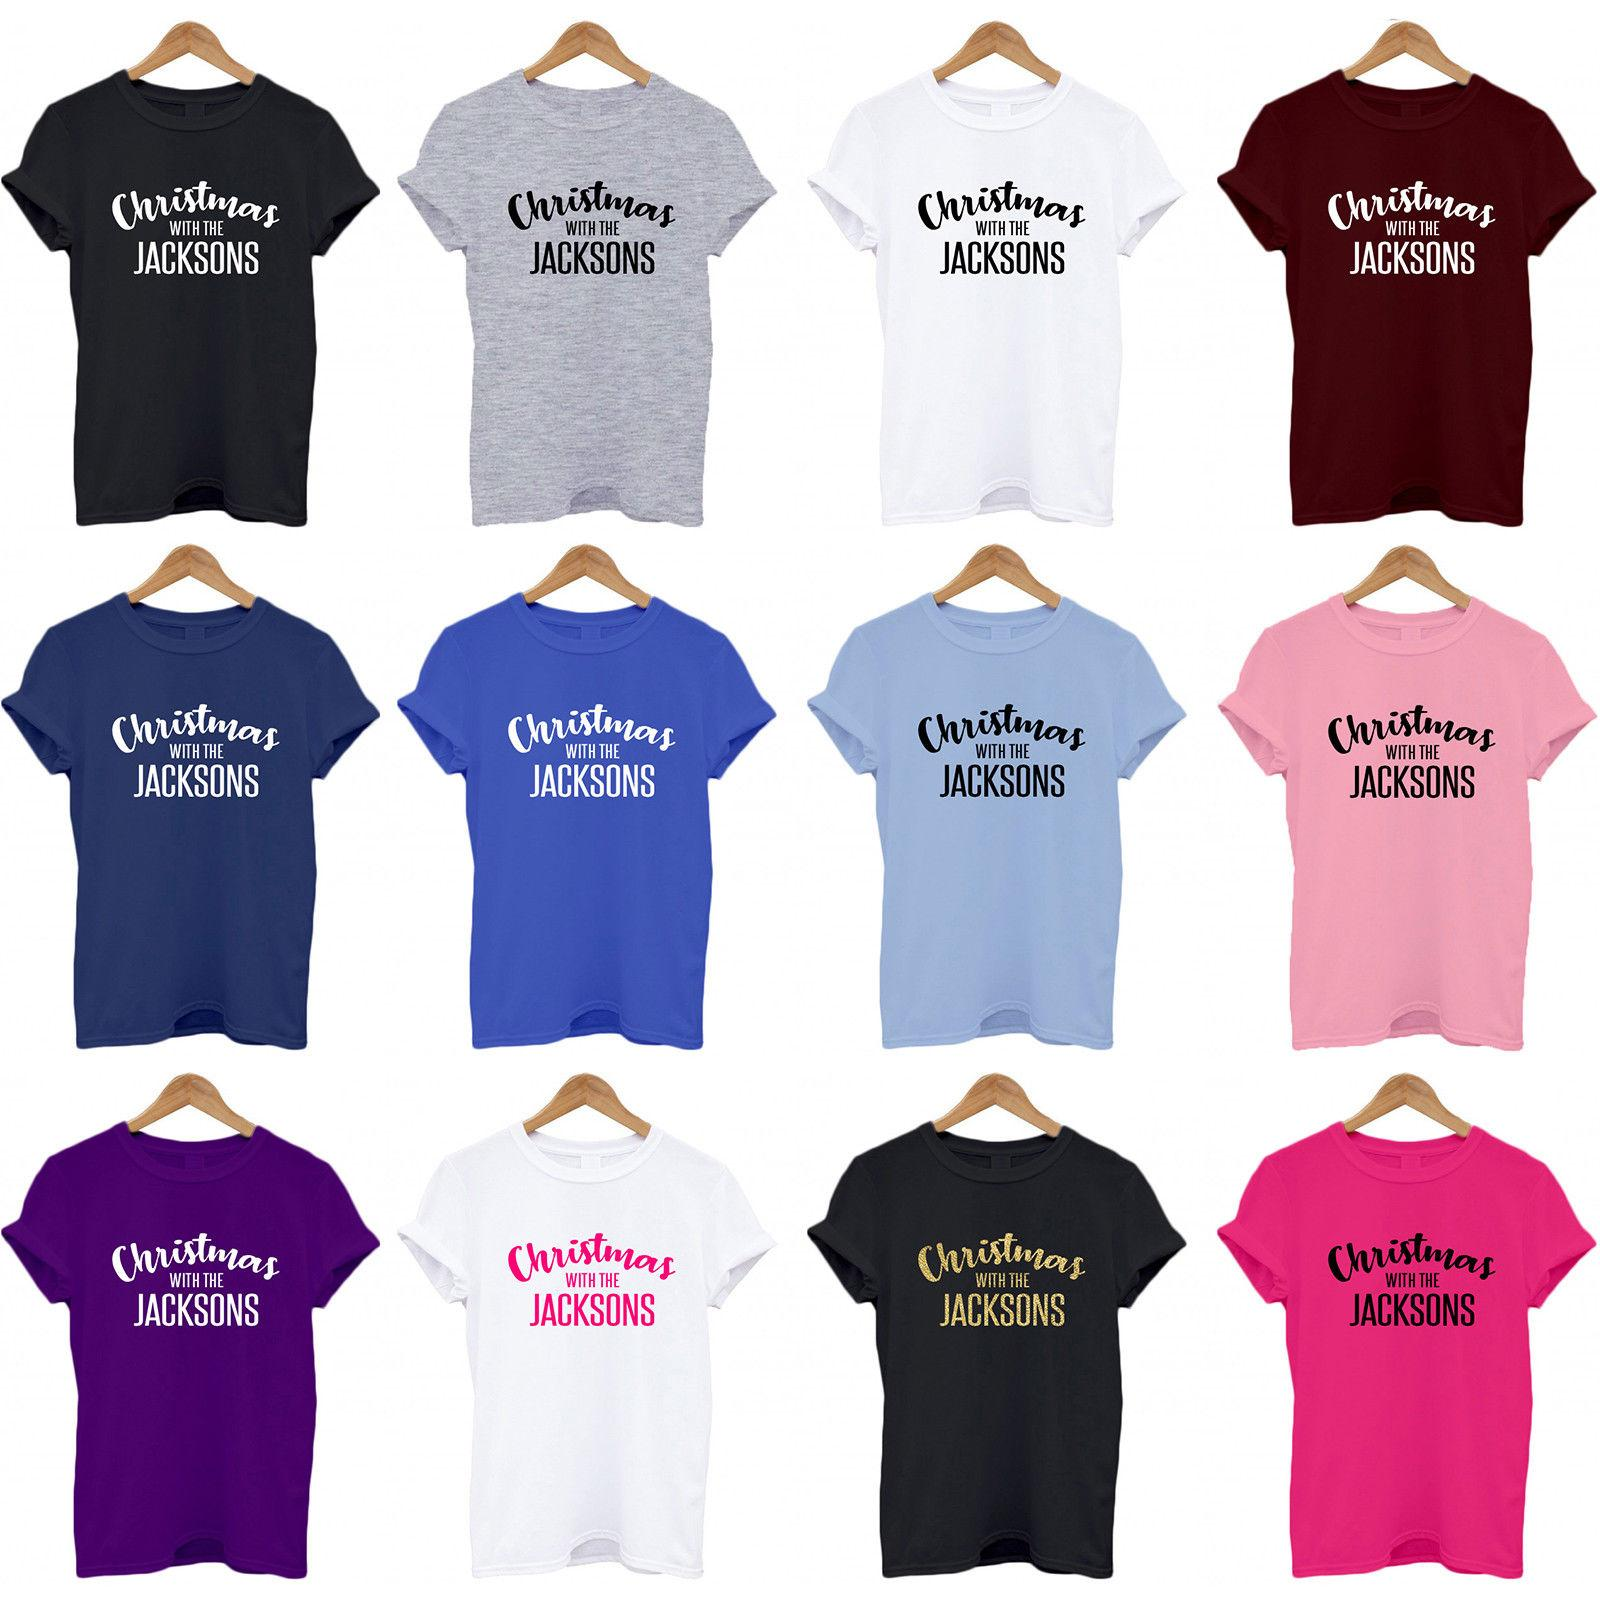 941055c4 CHRISTMAS WITH THE..., Personalised Family Name, Matching, Funny, T Shirt,  Top Tees Custom Jersey T Shirt Awesome T Shirt Clever T Shirts From  Pinkcup, ...